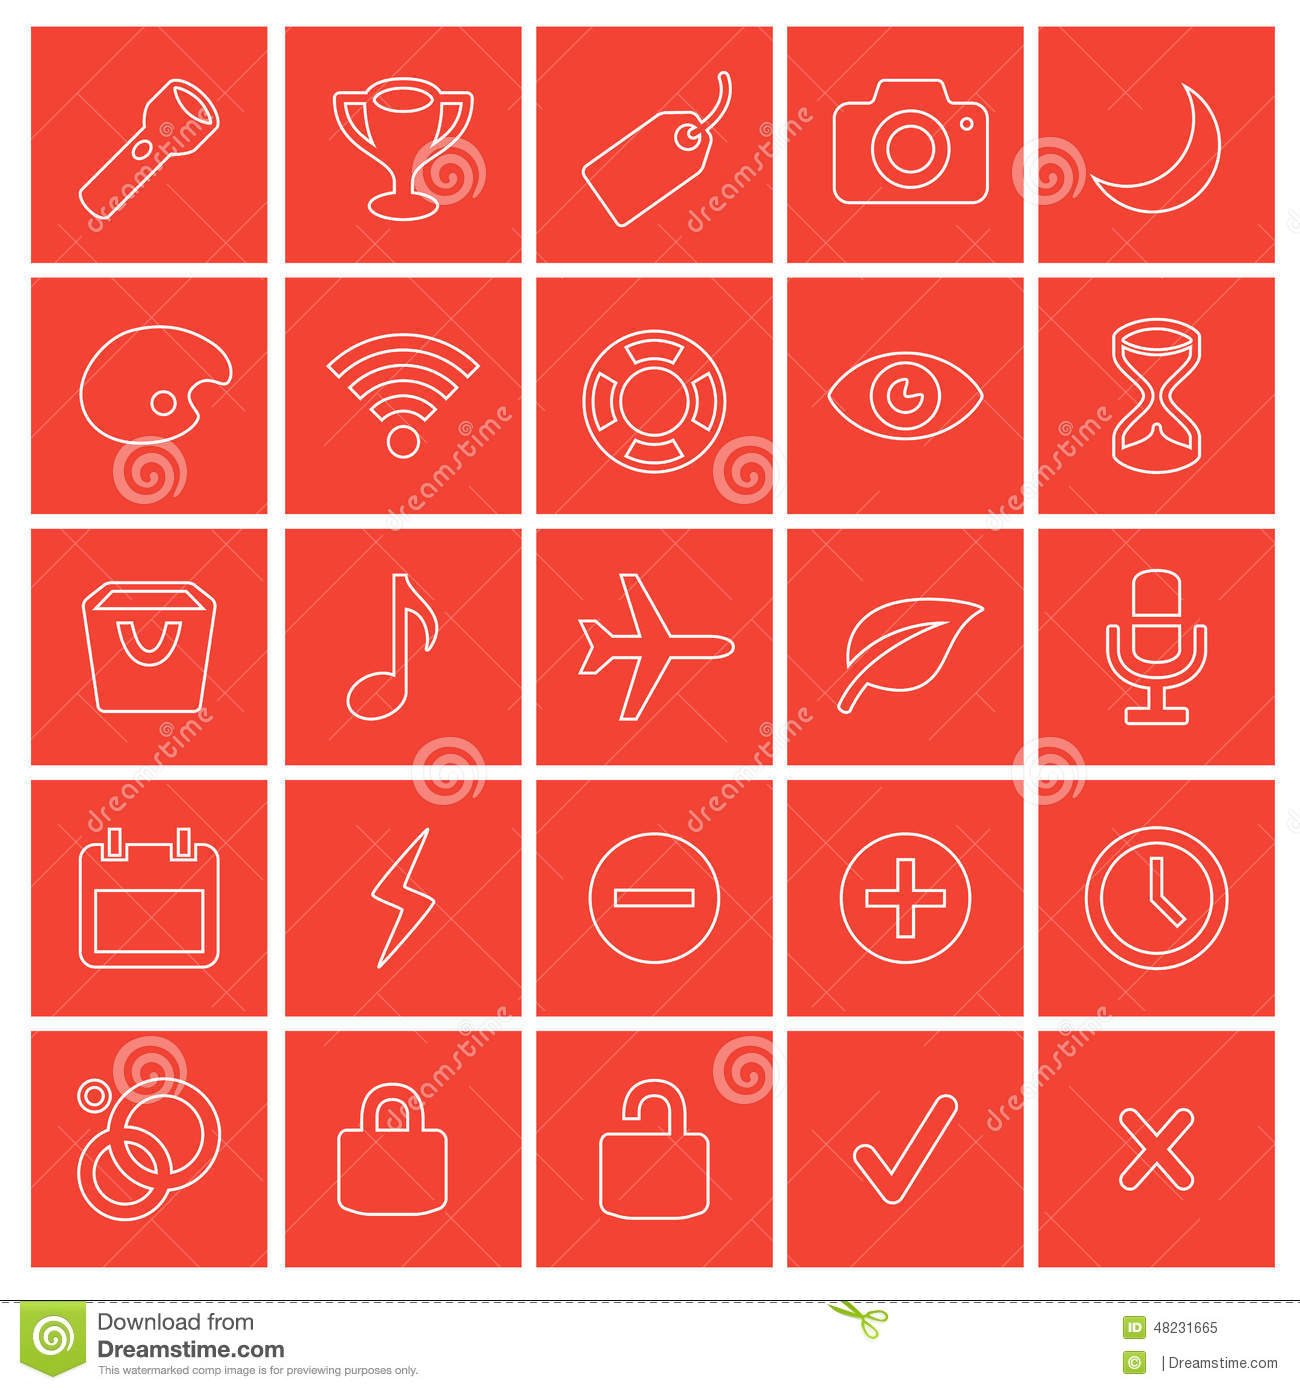 650f47befc 25 ready red colored web icons. Easily change colors to meet your needs.